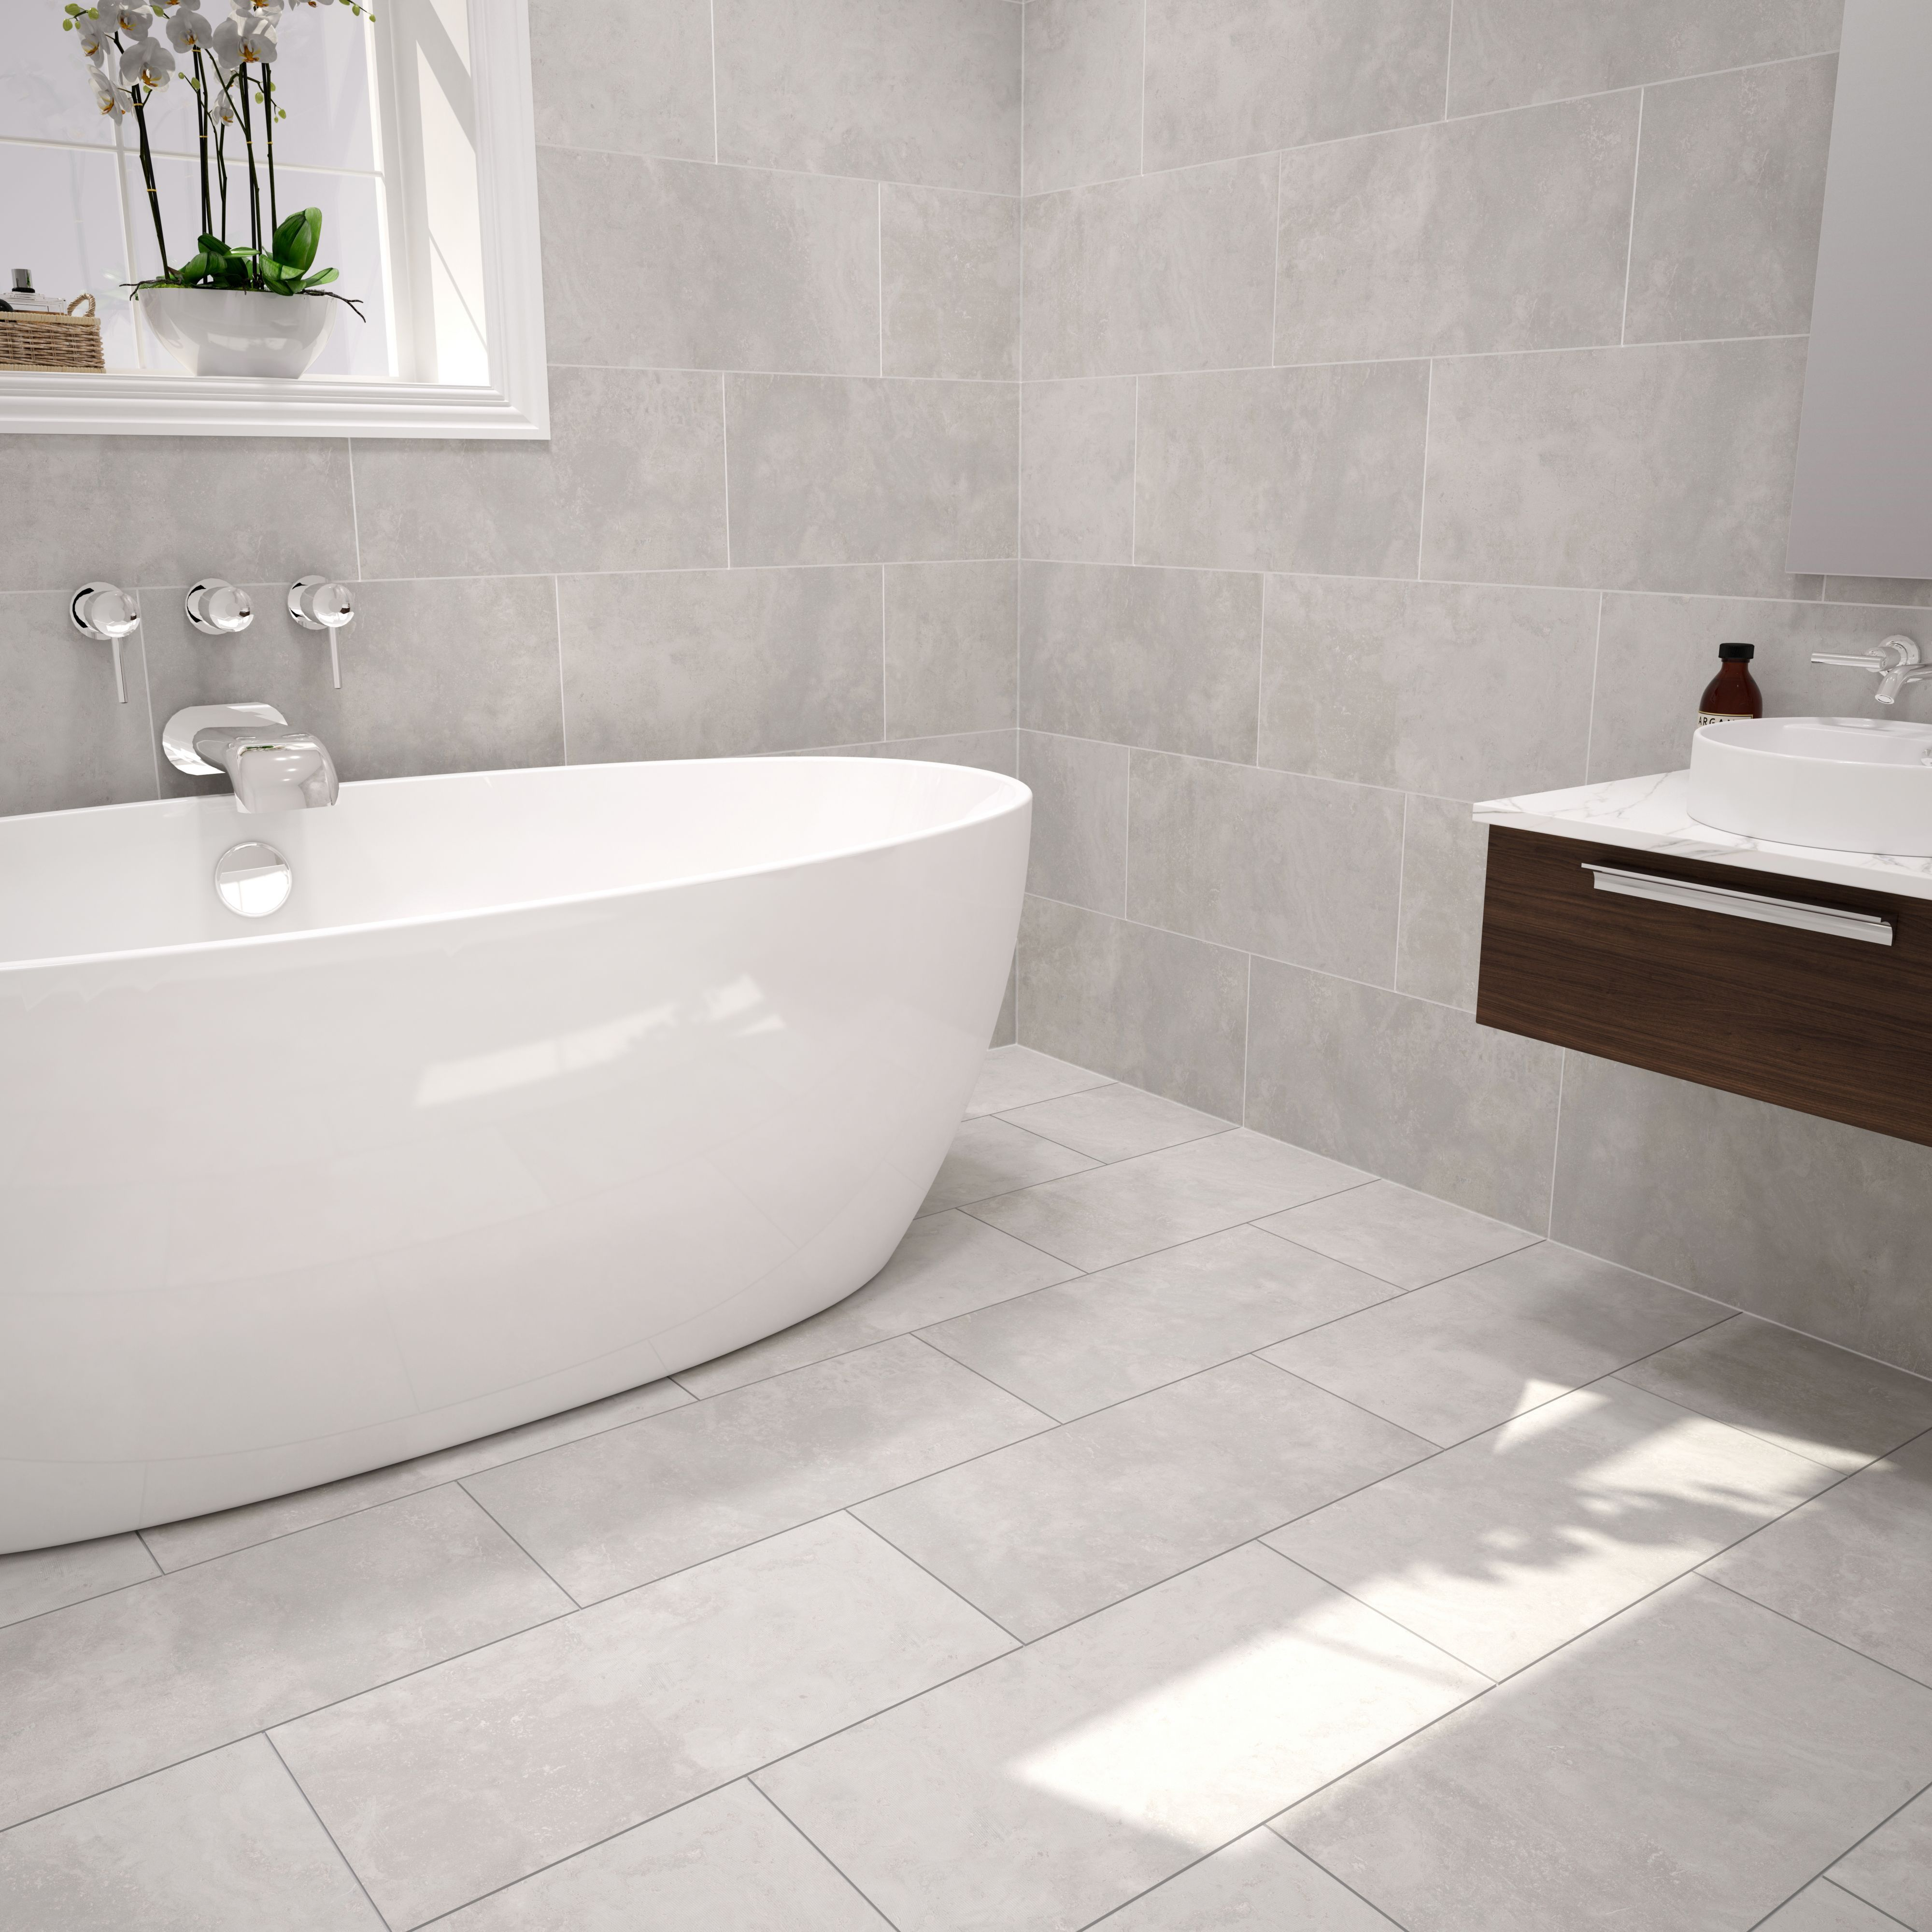 Grey Bathroom Floor Tiles Urban Cement Grey Stone Effect Ceramic Wall And Floor Tile